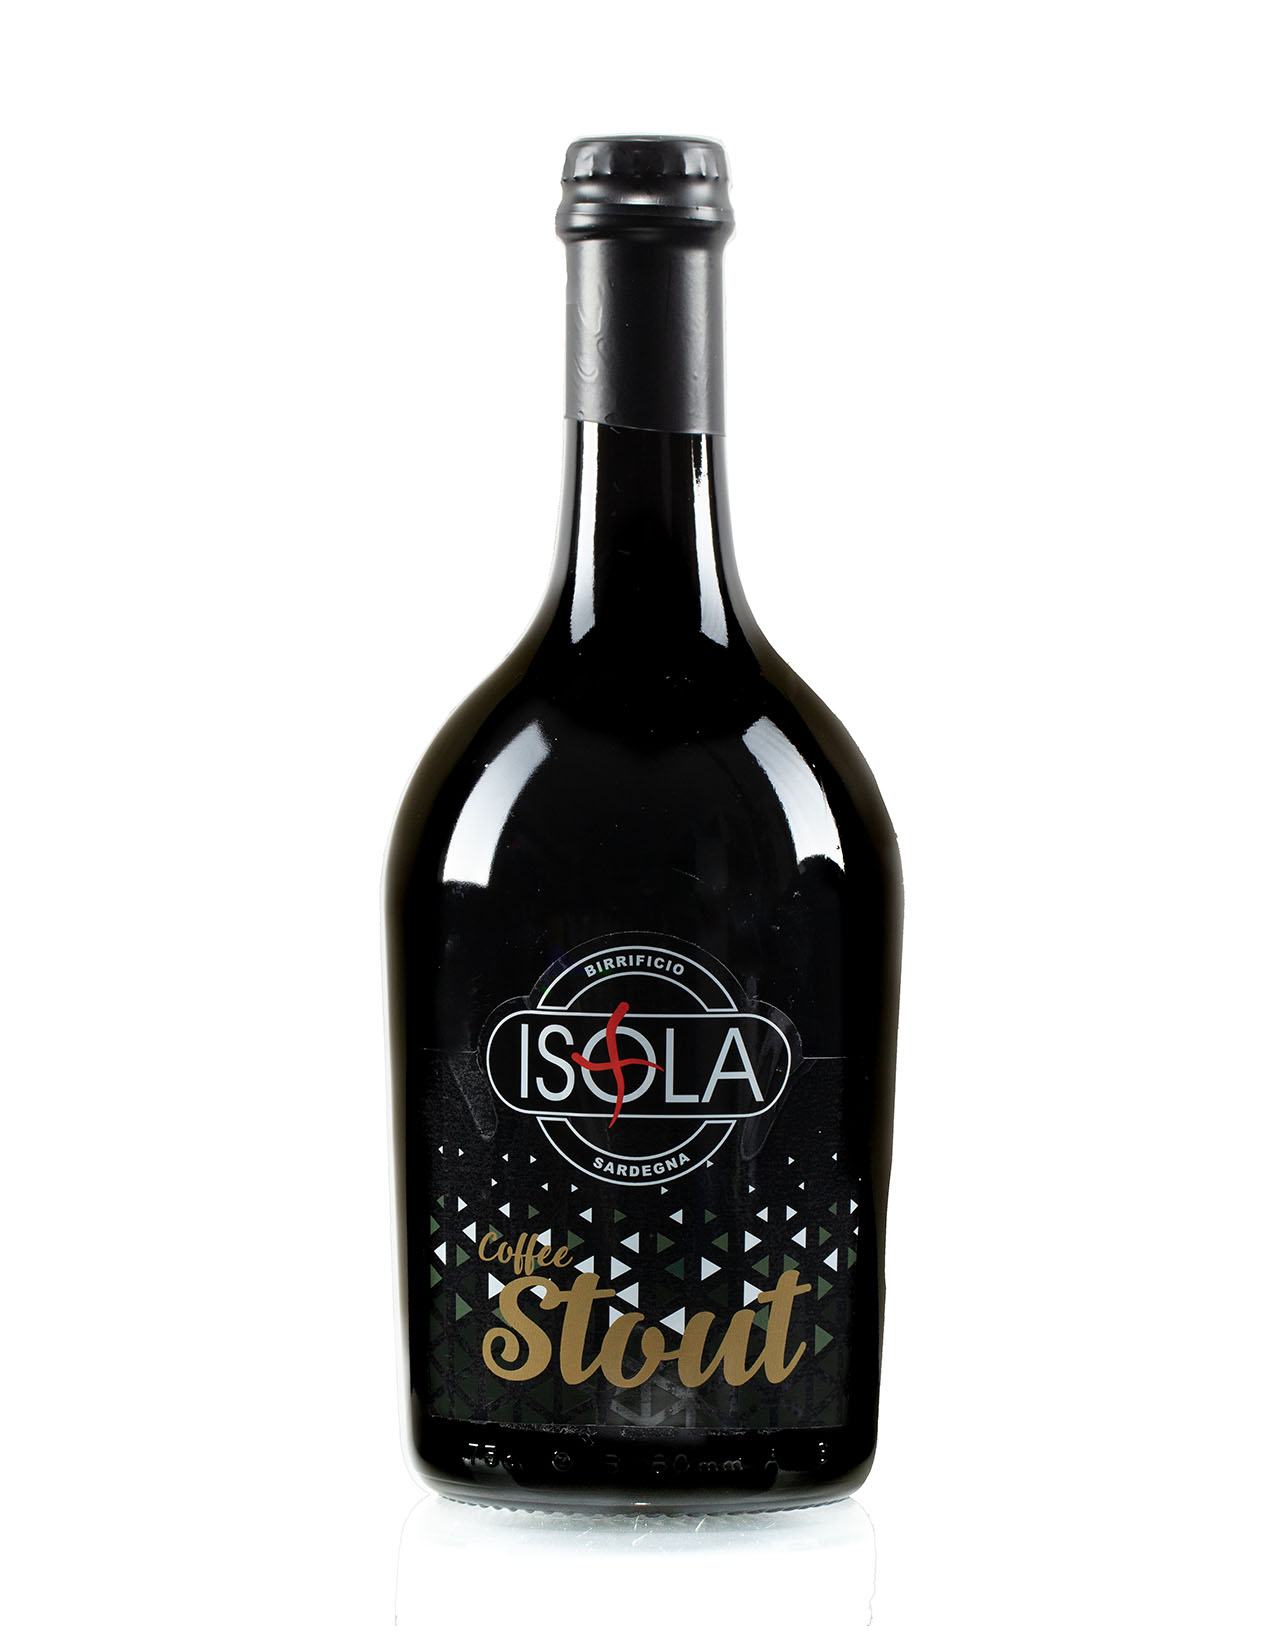 ISOLA COFFEE STOUT